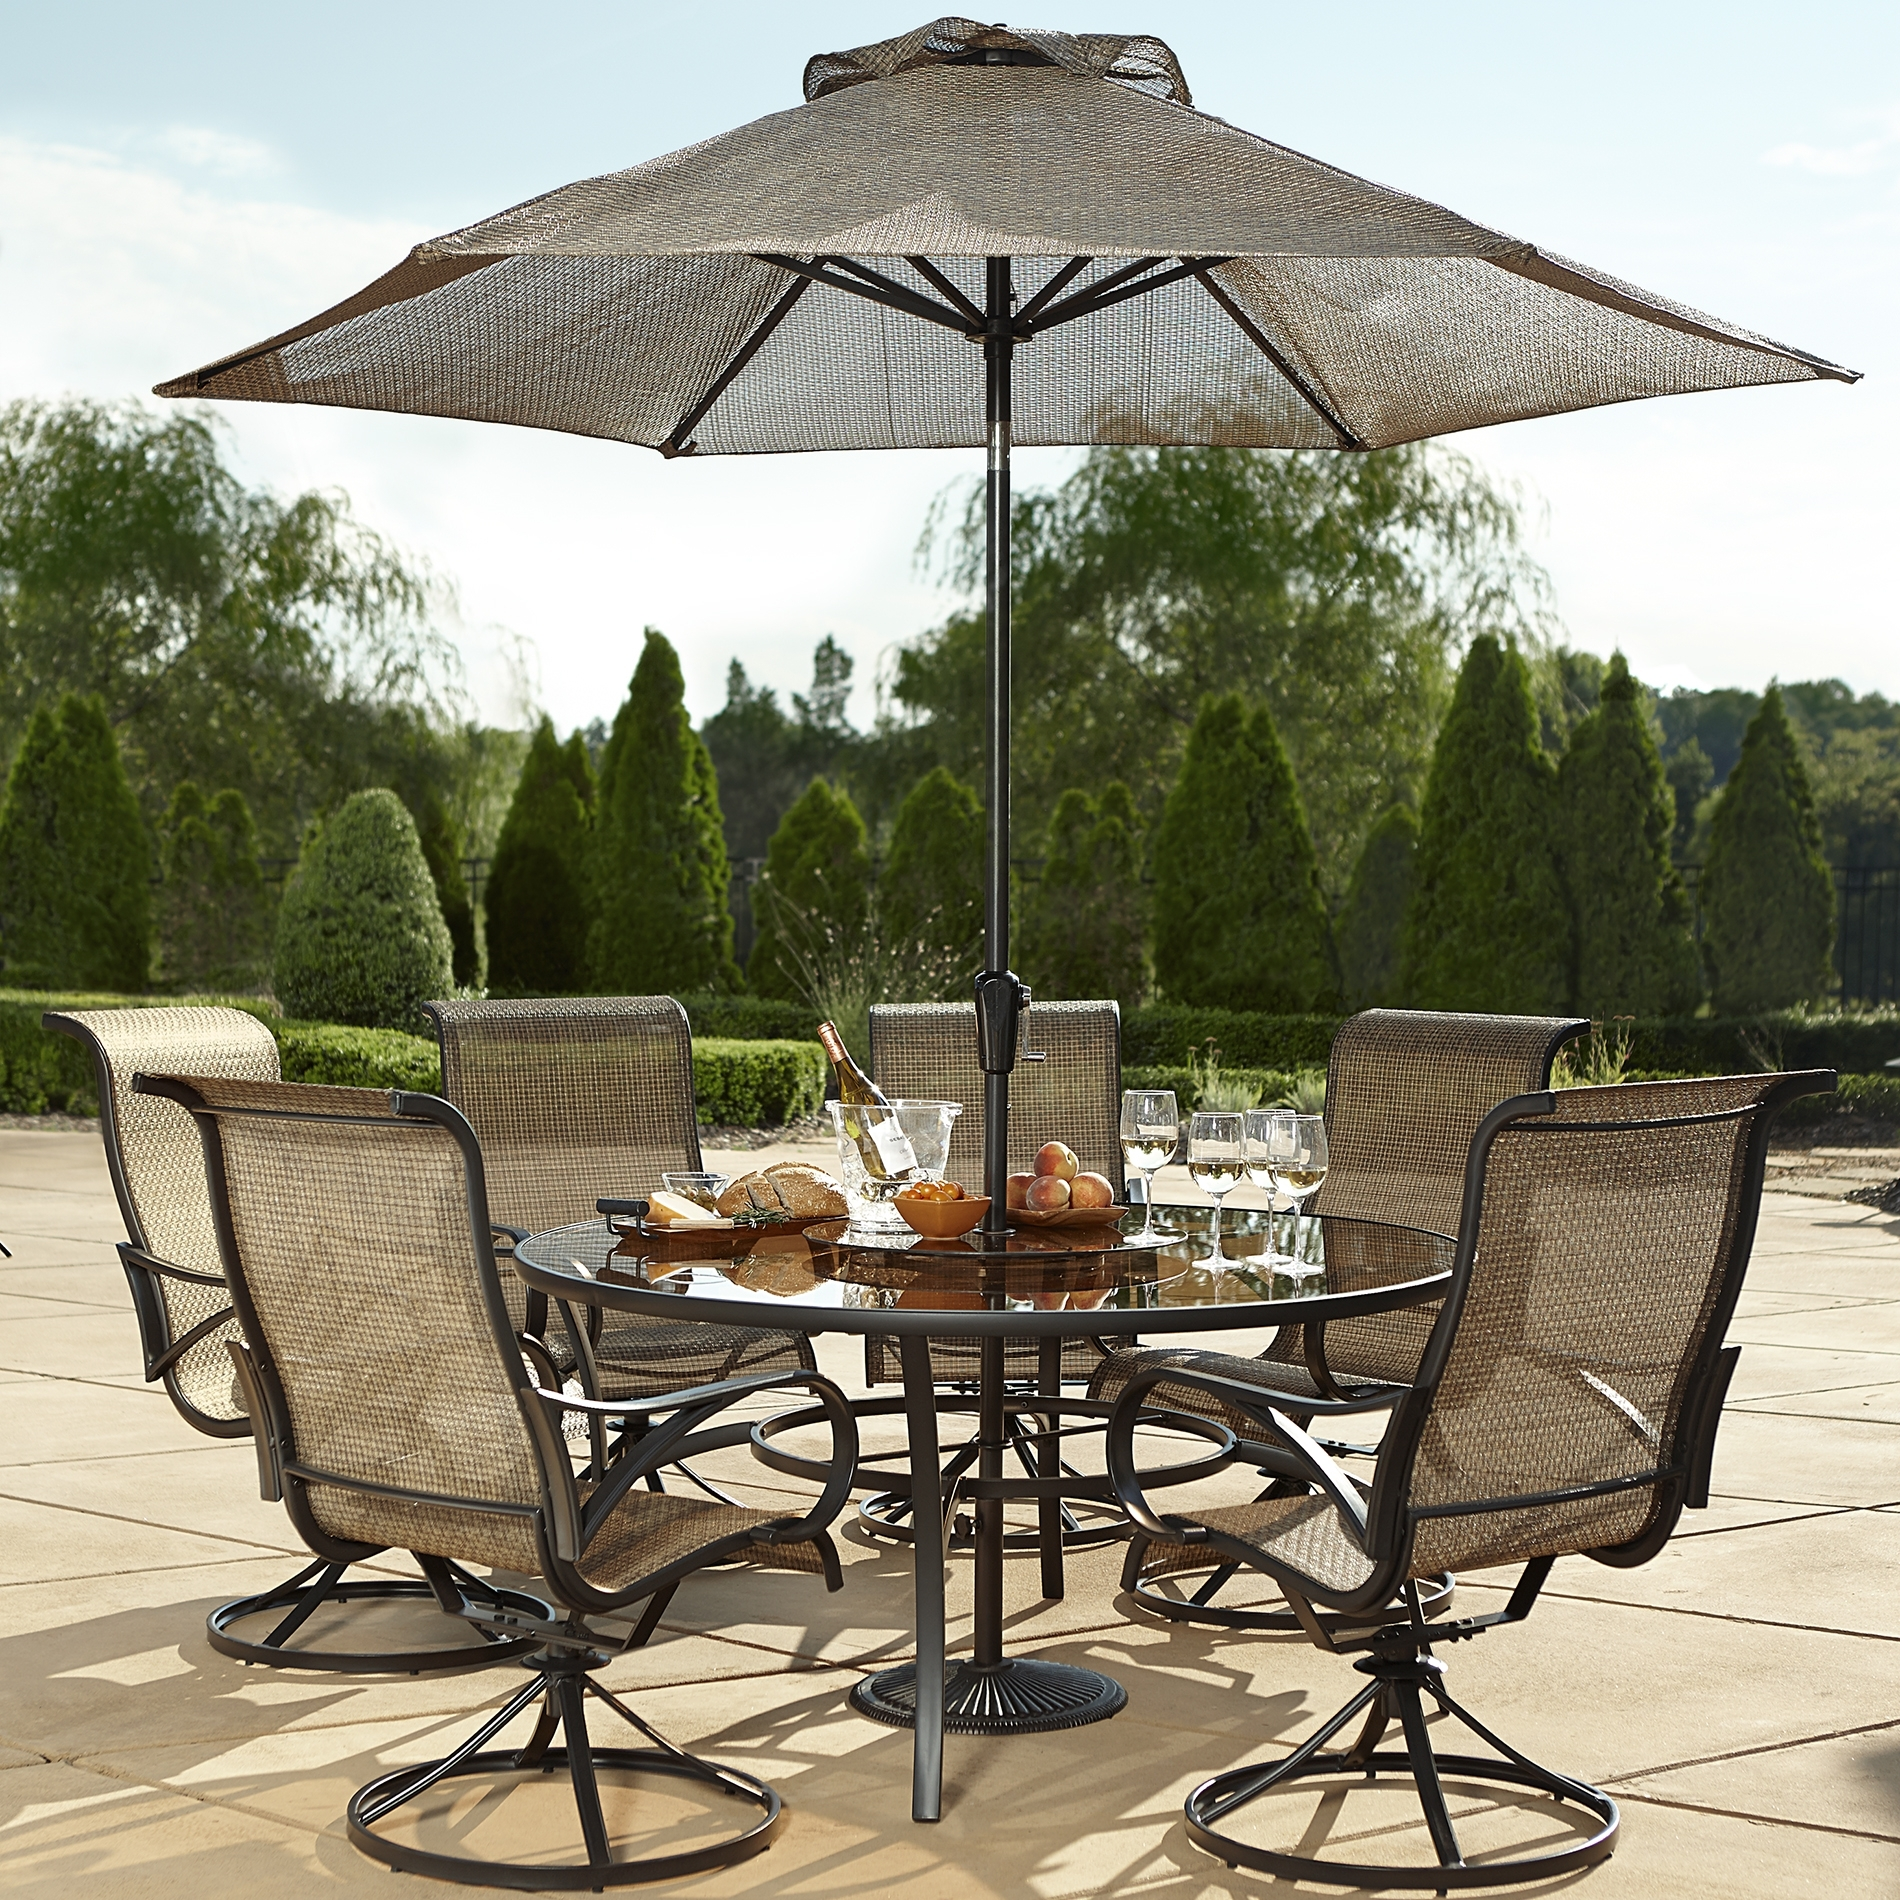 Best Of Round Patio Table Set Ideas